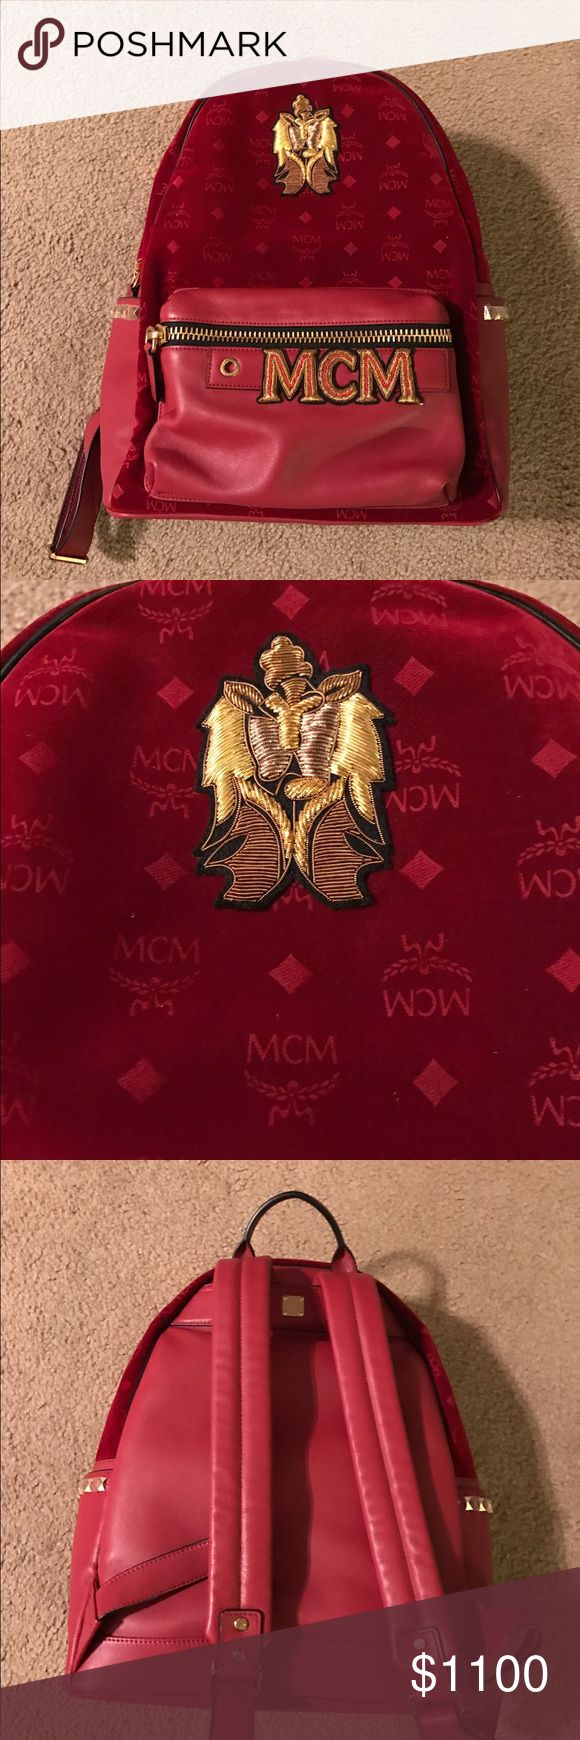 MCM Bag!Price is firm! Brand new,100% authentic,large size! MCM Bags Backpacks